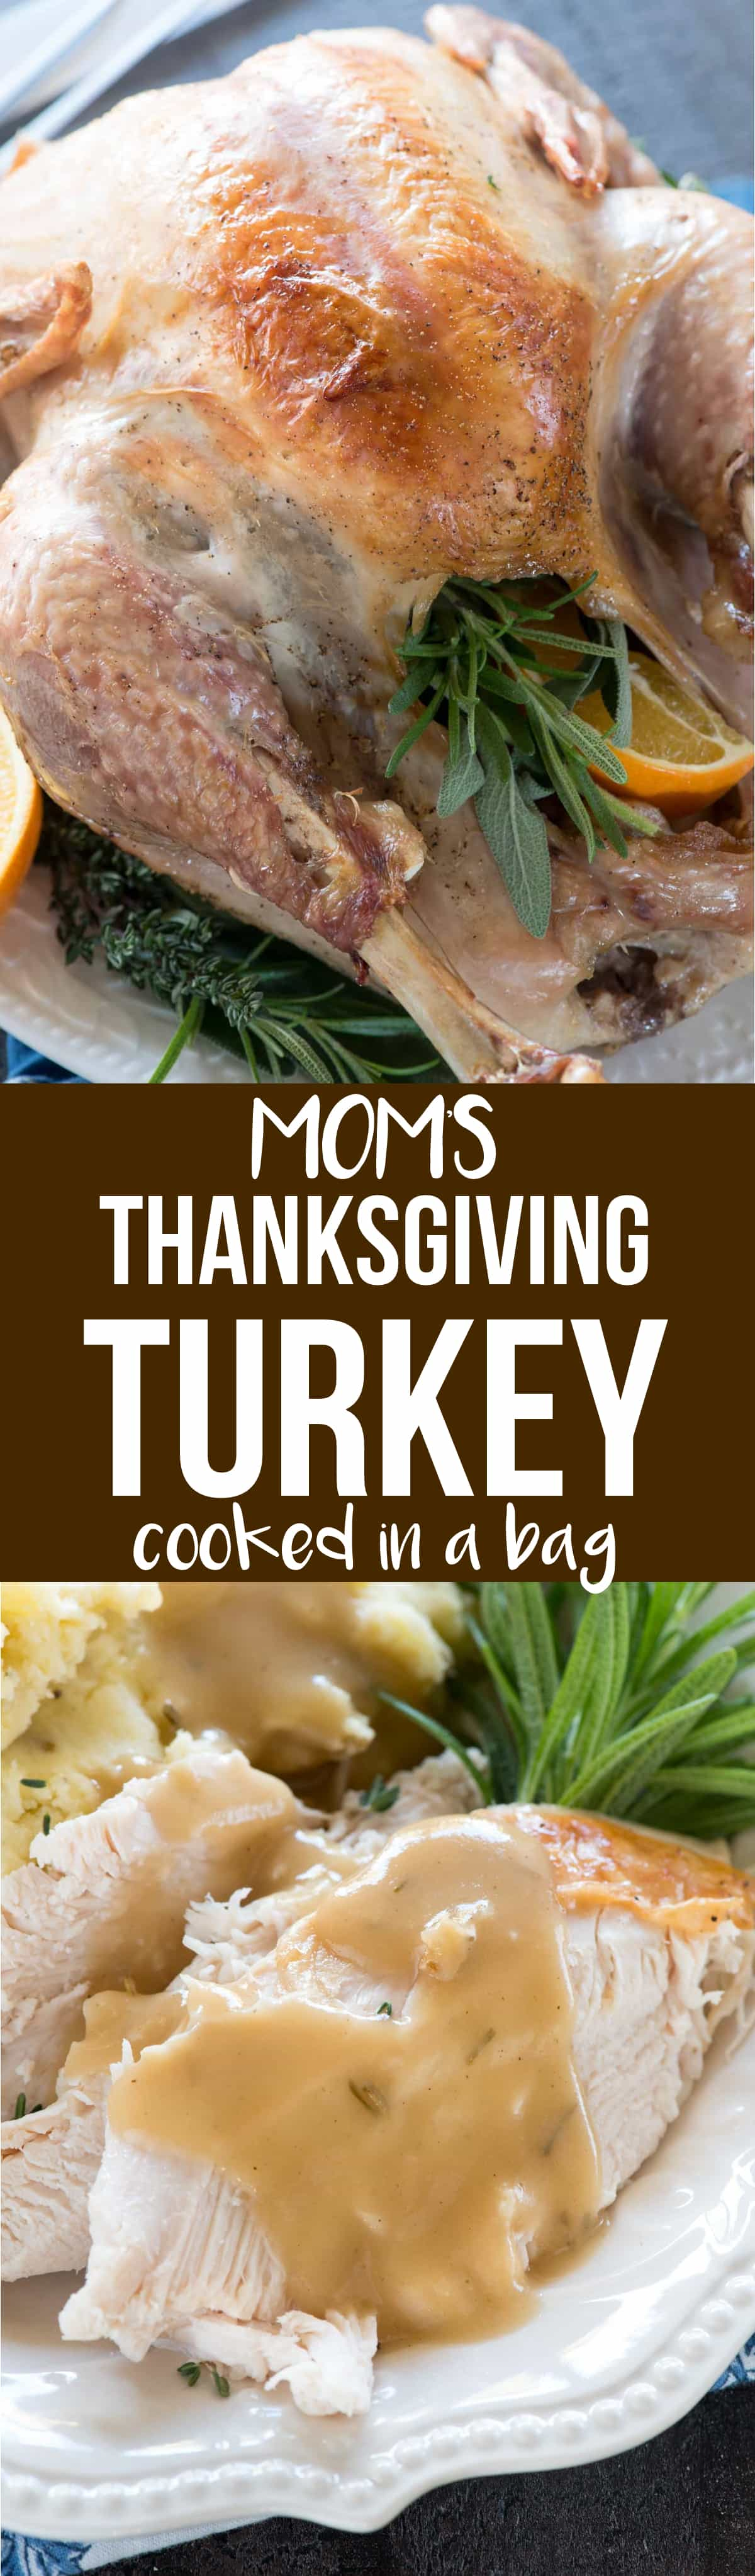 Turkey Oven Bags For Optimal Cooking Times And Temperatures Your Meal